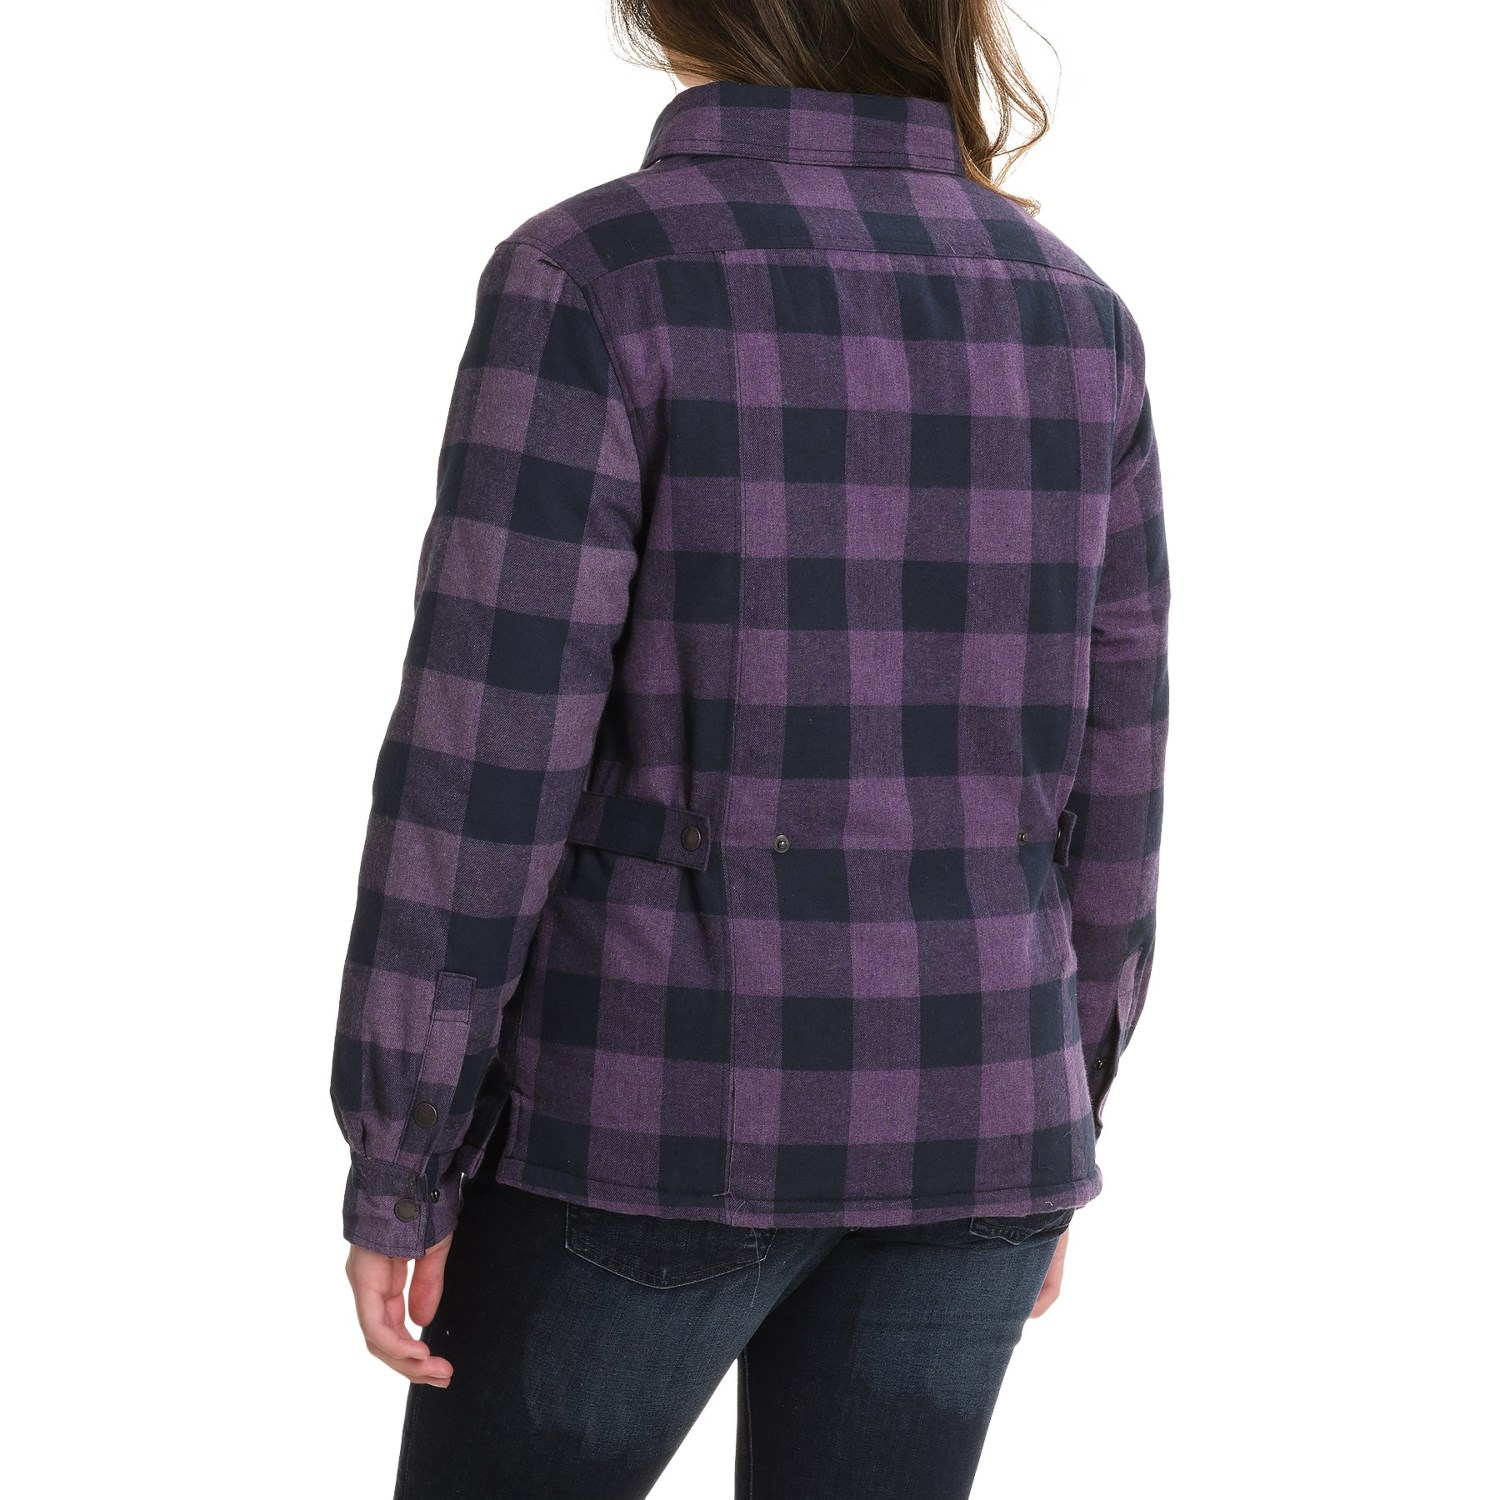 Stillwater Supply Co. Flannel Shirt Jacket (For Women) - Save 44%